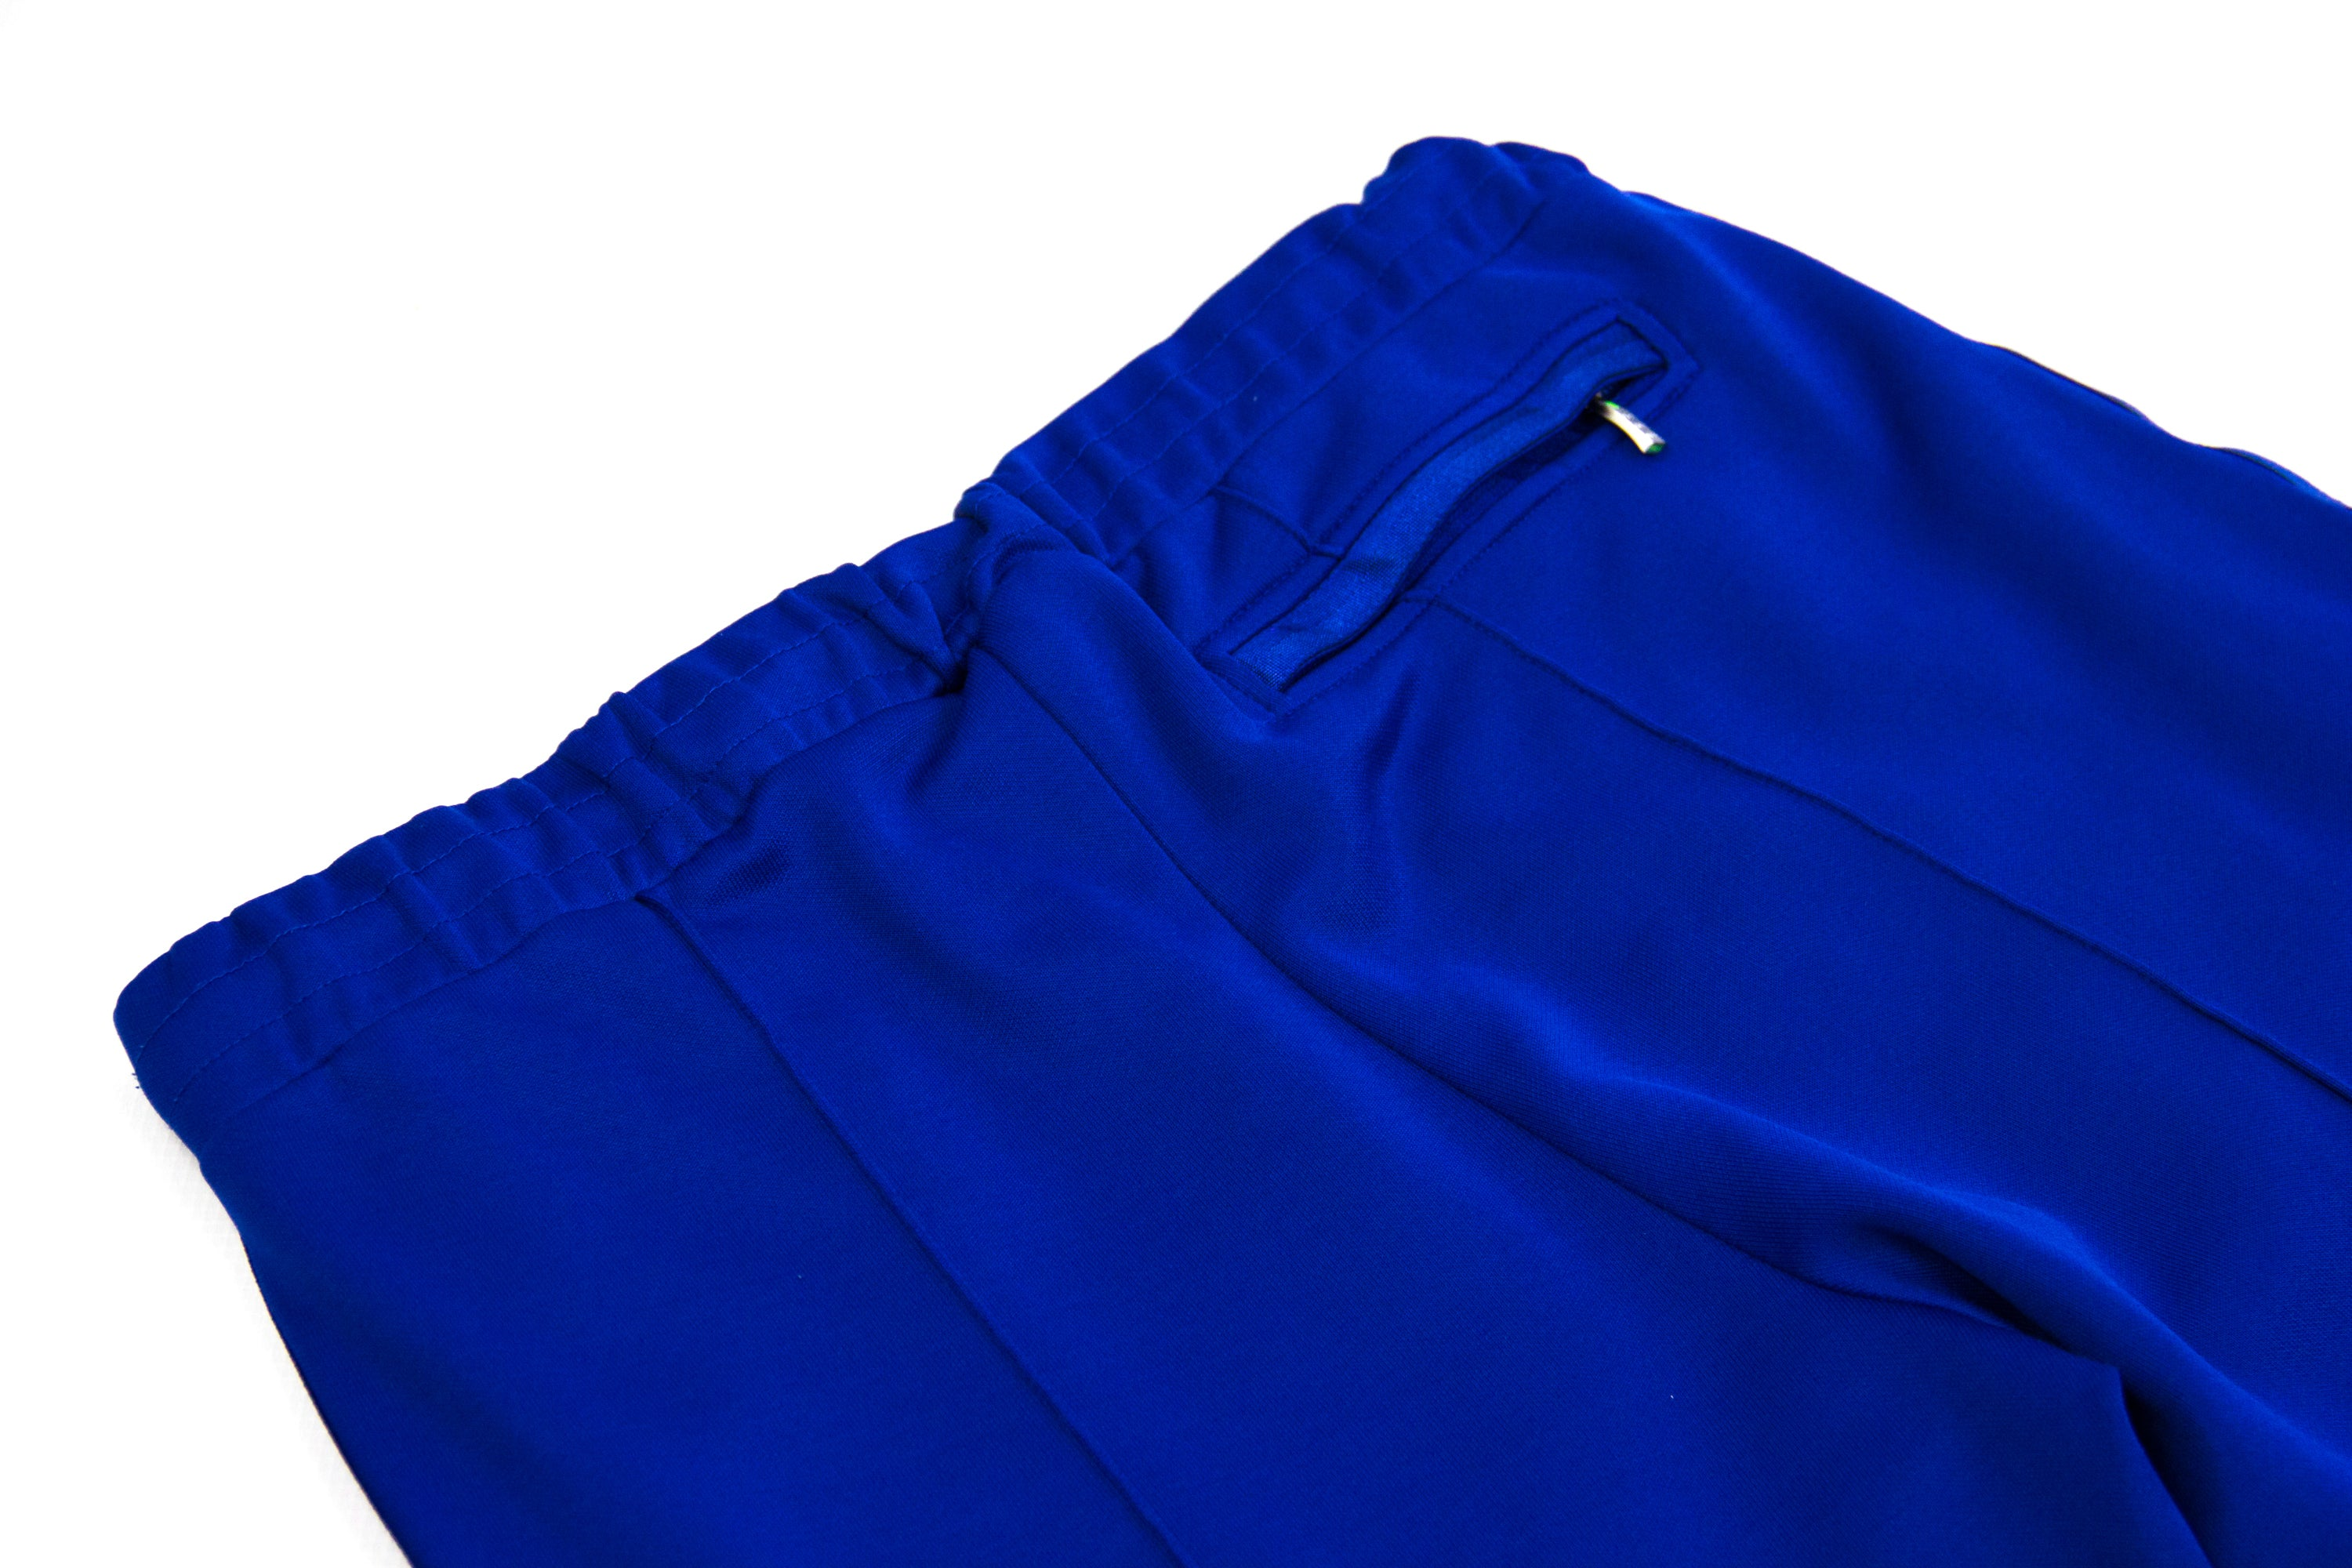 Hugo Boss Blue Track Pants, SIZE S - secondfirst